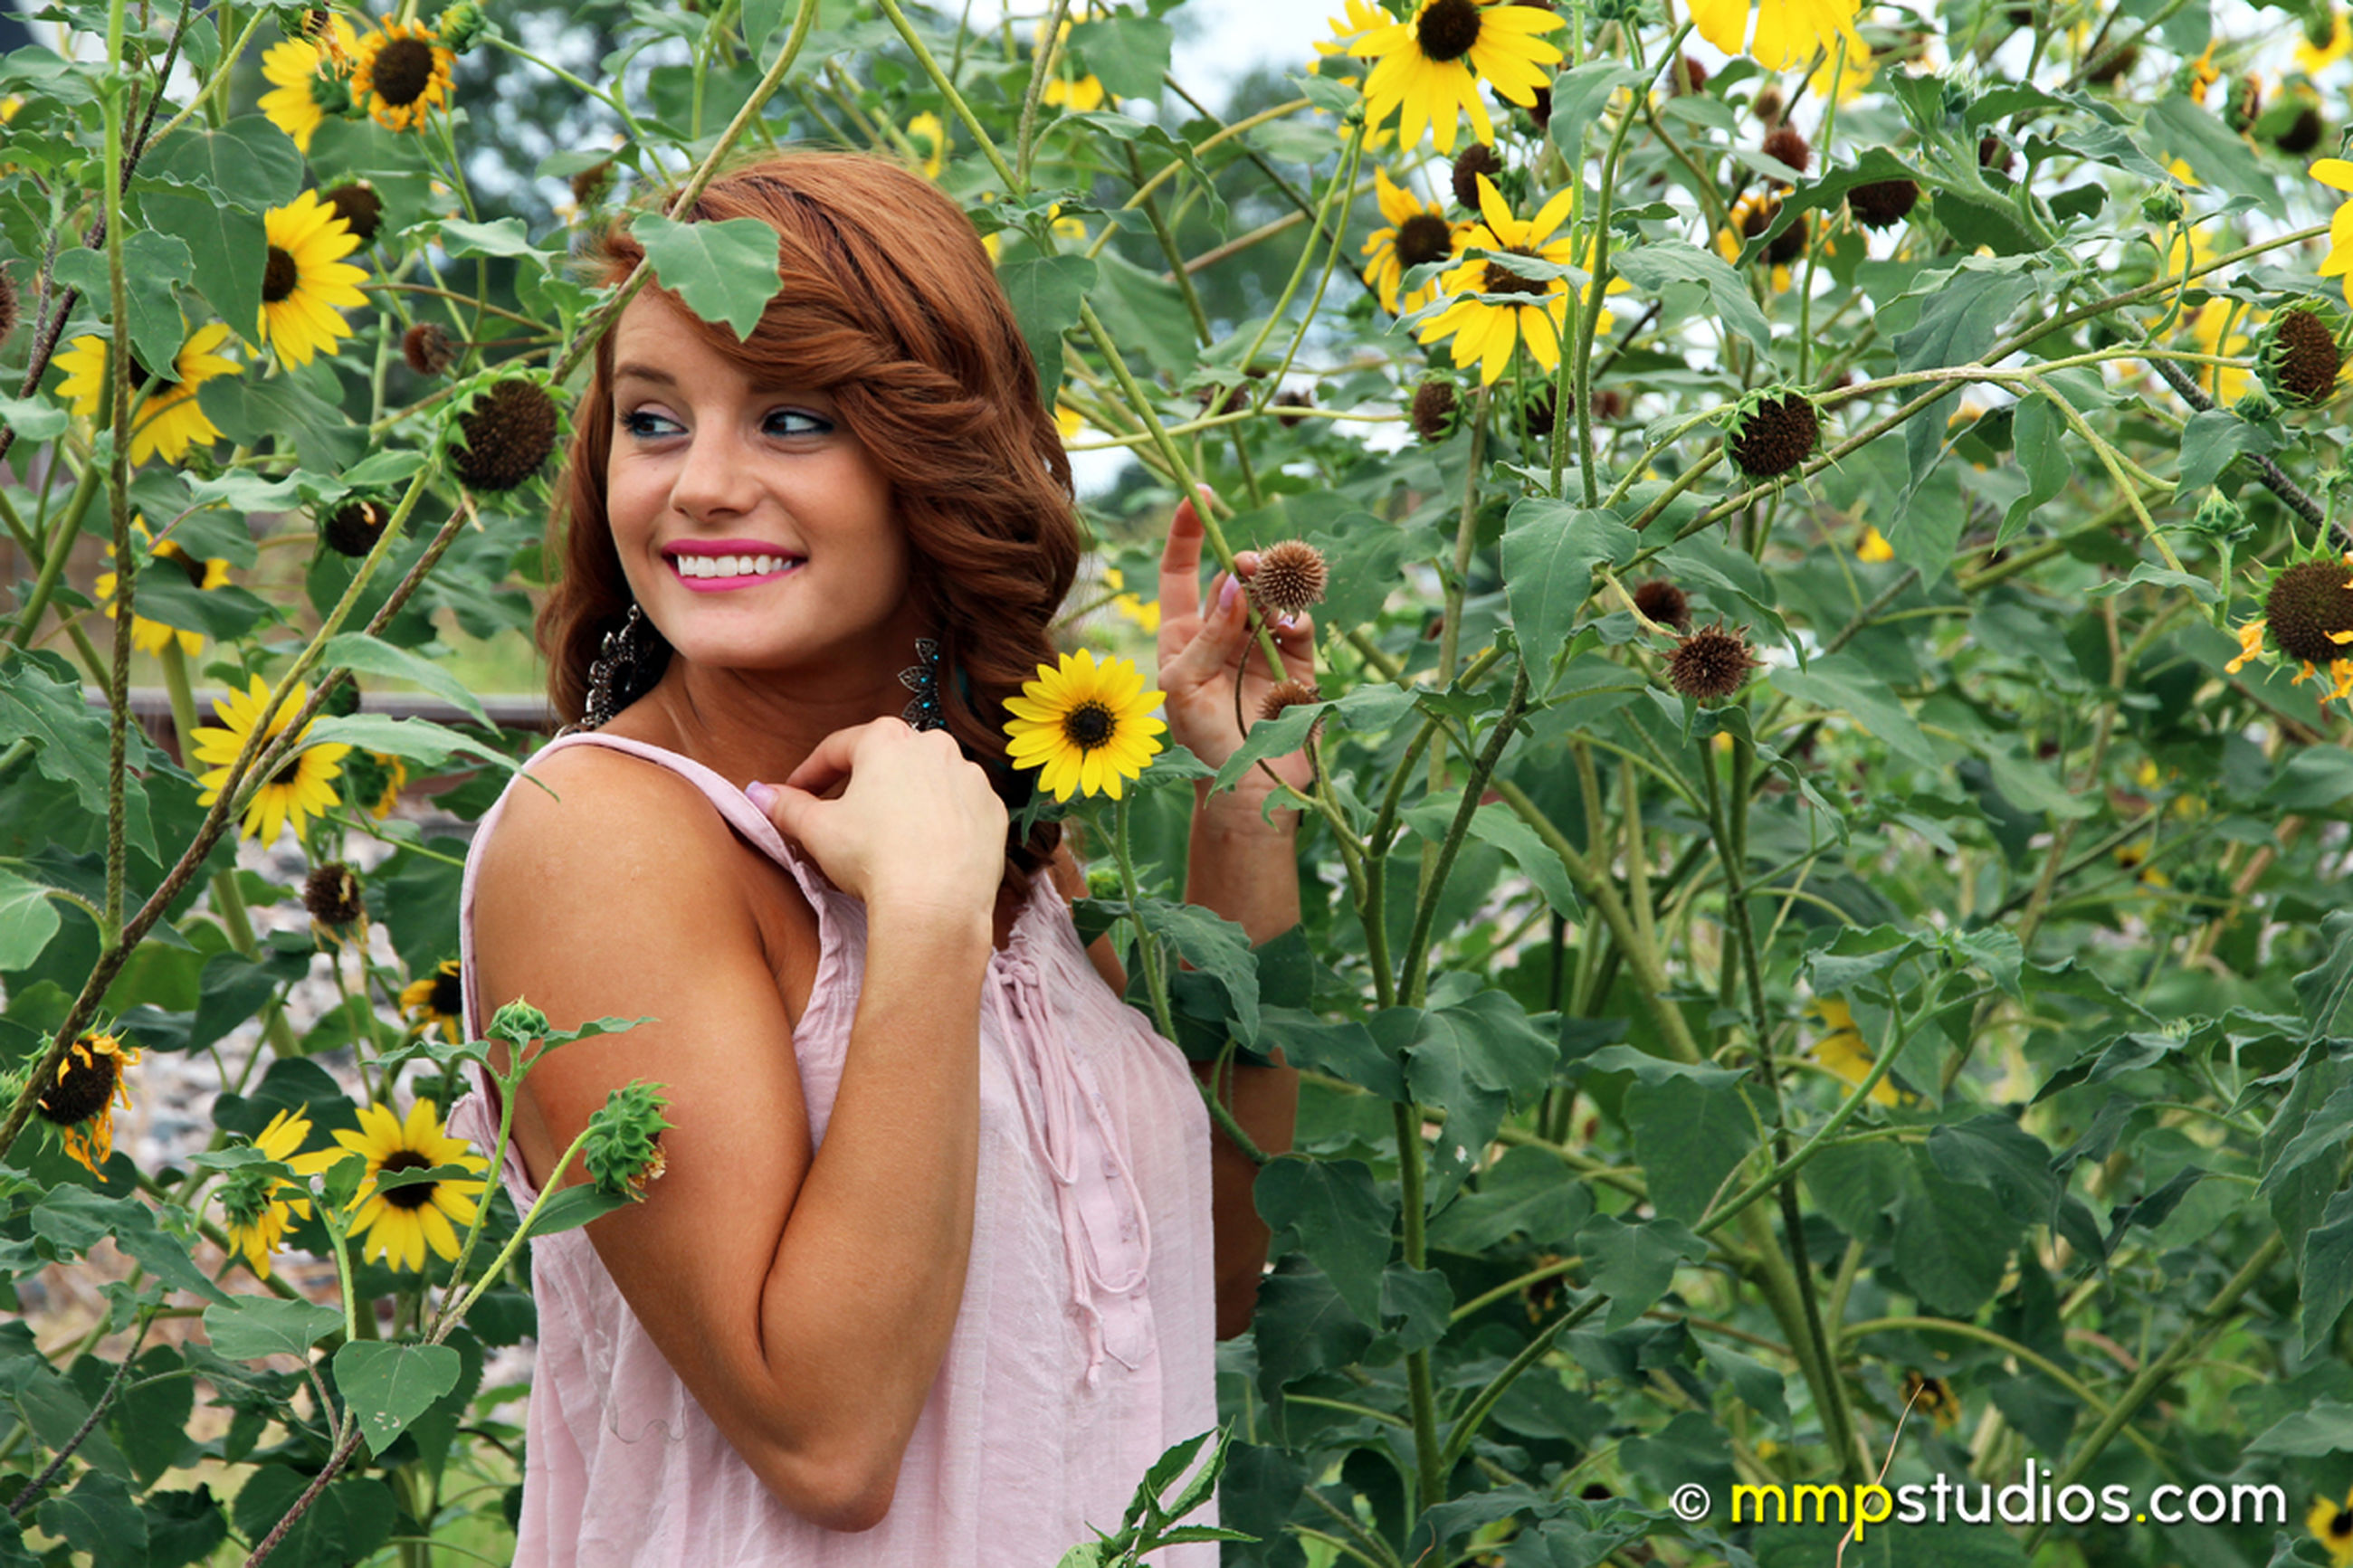 plant, one person, looking at camera, smiling, portrait, growth, young adult, real people, young women, leaf, plant part, leisure activity, flowering plant, lifestyles, flower, women, nature, happiness, standing, day, beautiful woman, flower head, hairstyle, outdoors, sunflower